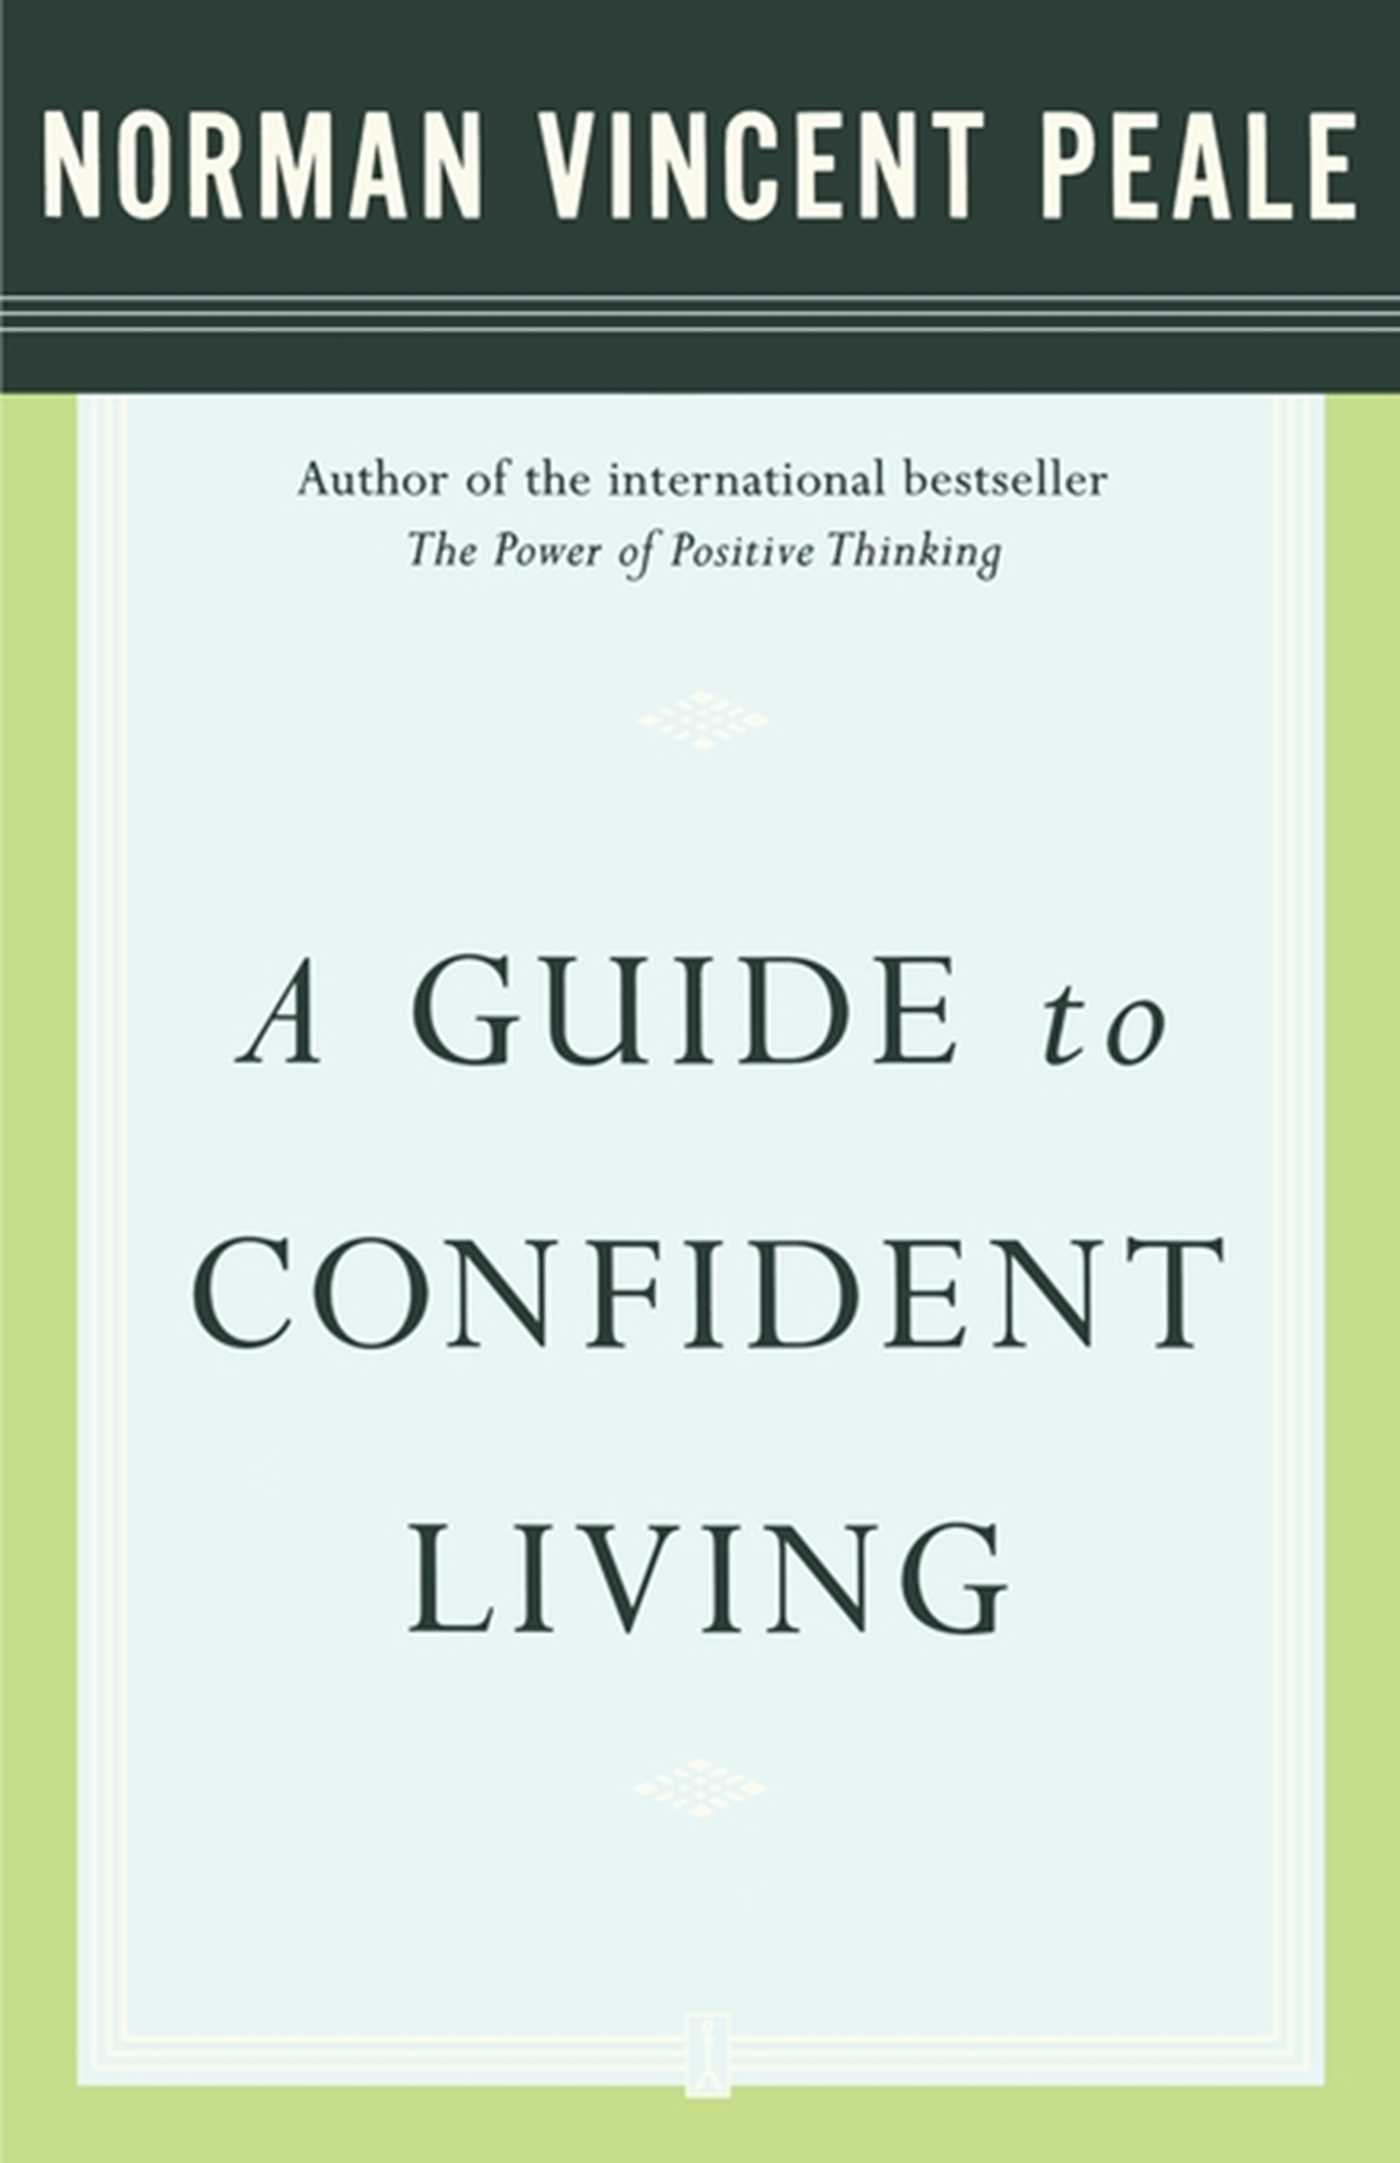 Download Ebook A Guide to Confident Living by Dr. Norman Vincent Peale Pdf